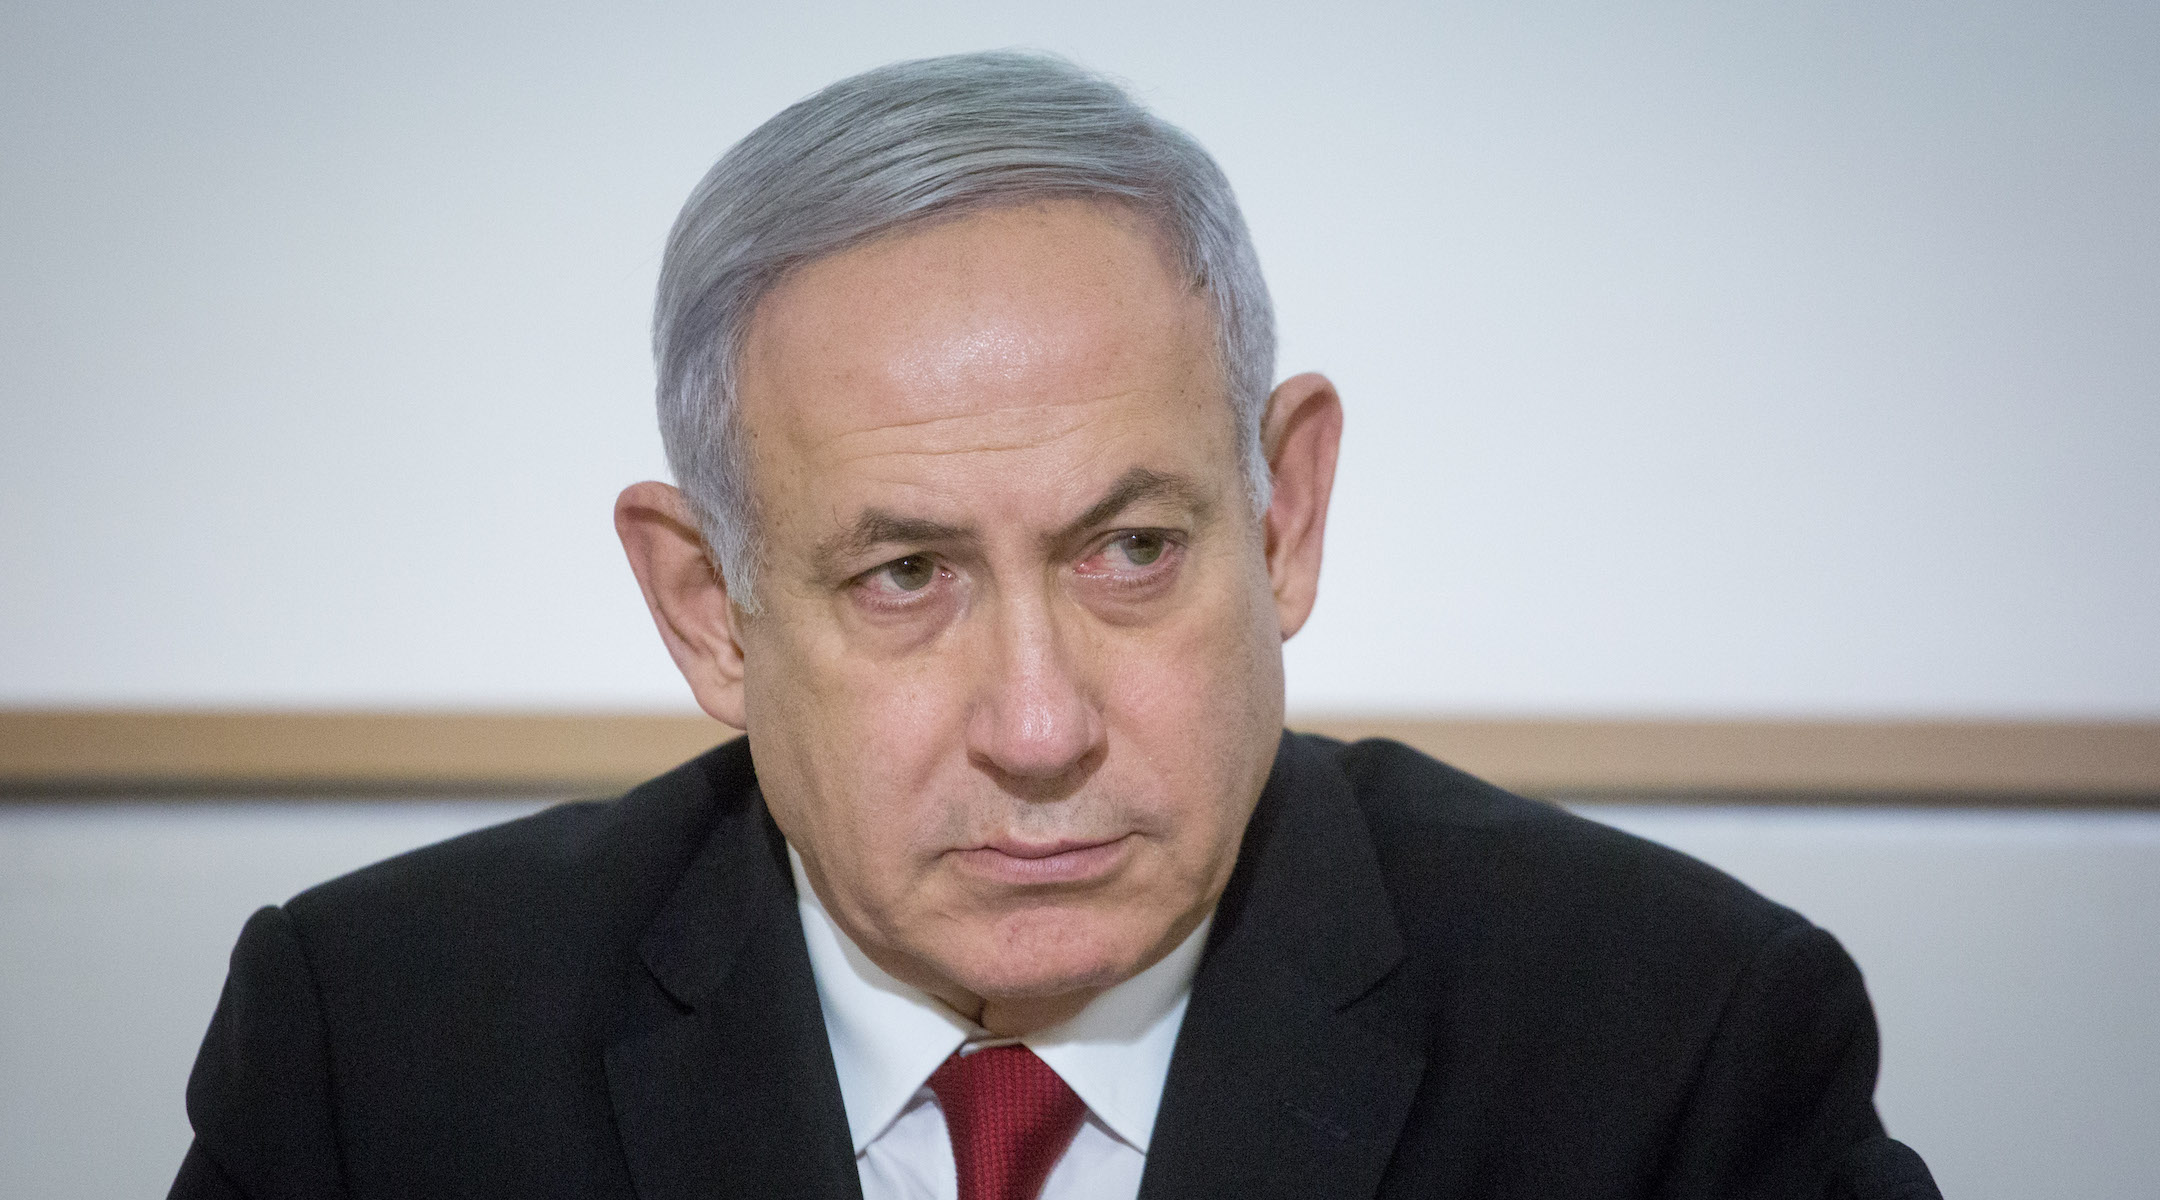 Did Netanyahu just lose? Here's what happened Tuesday in Israeli politics.